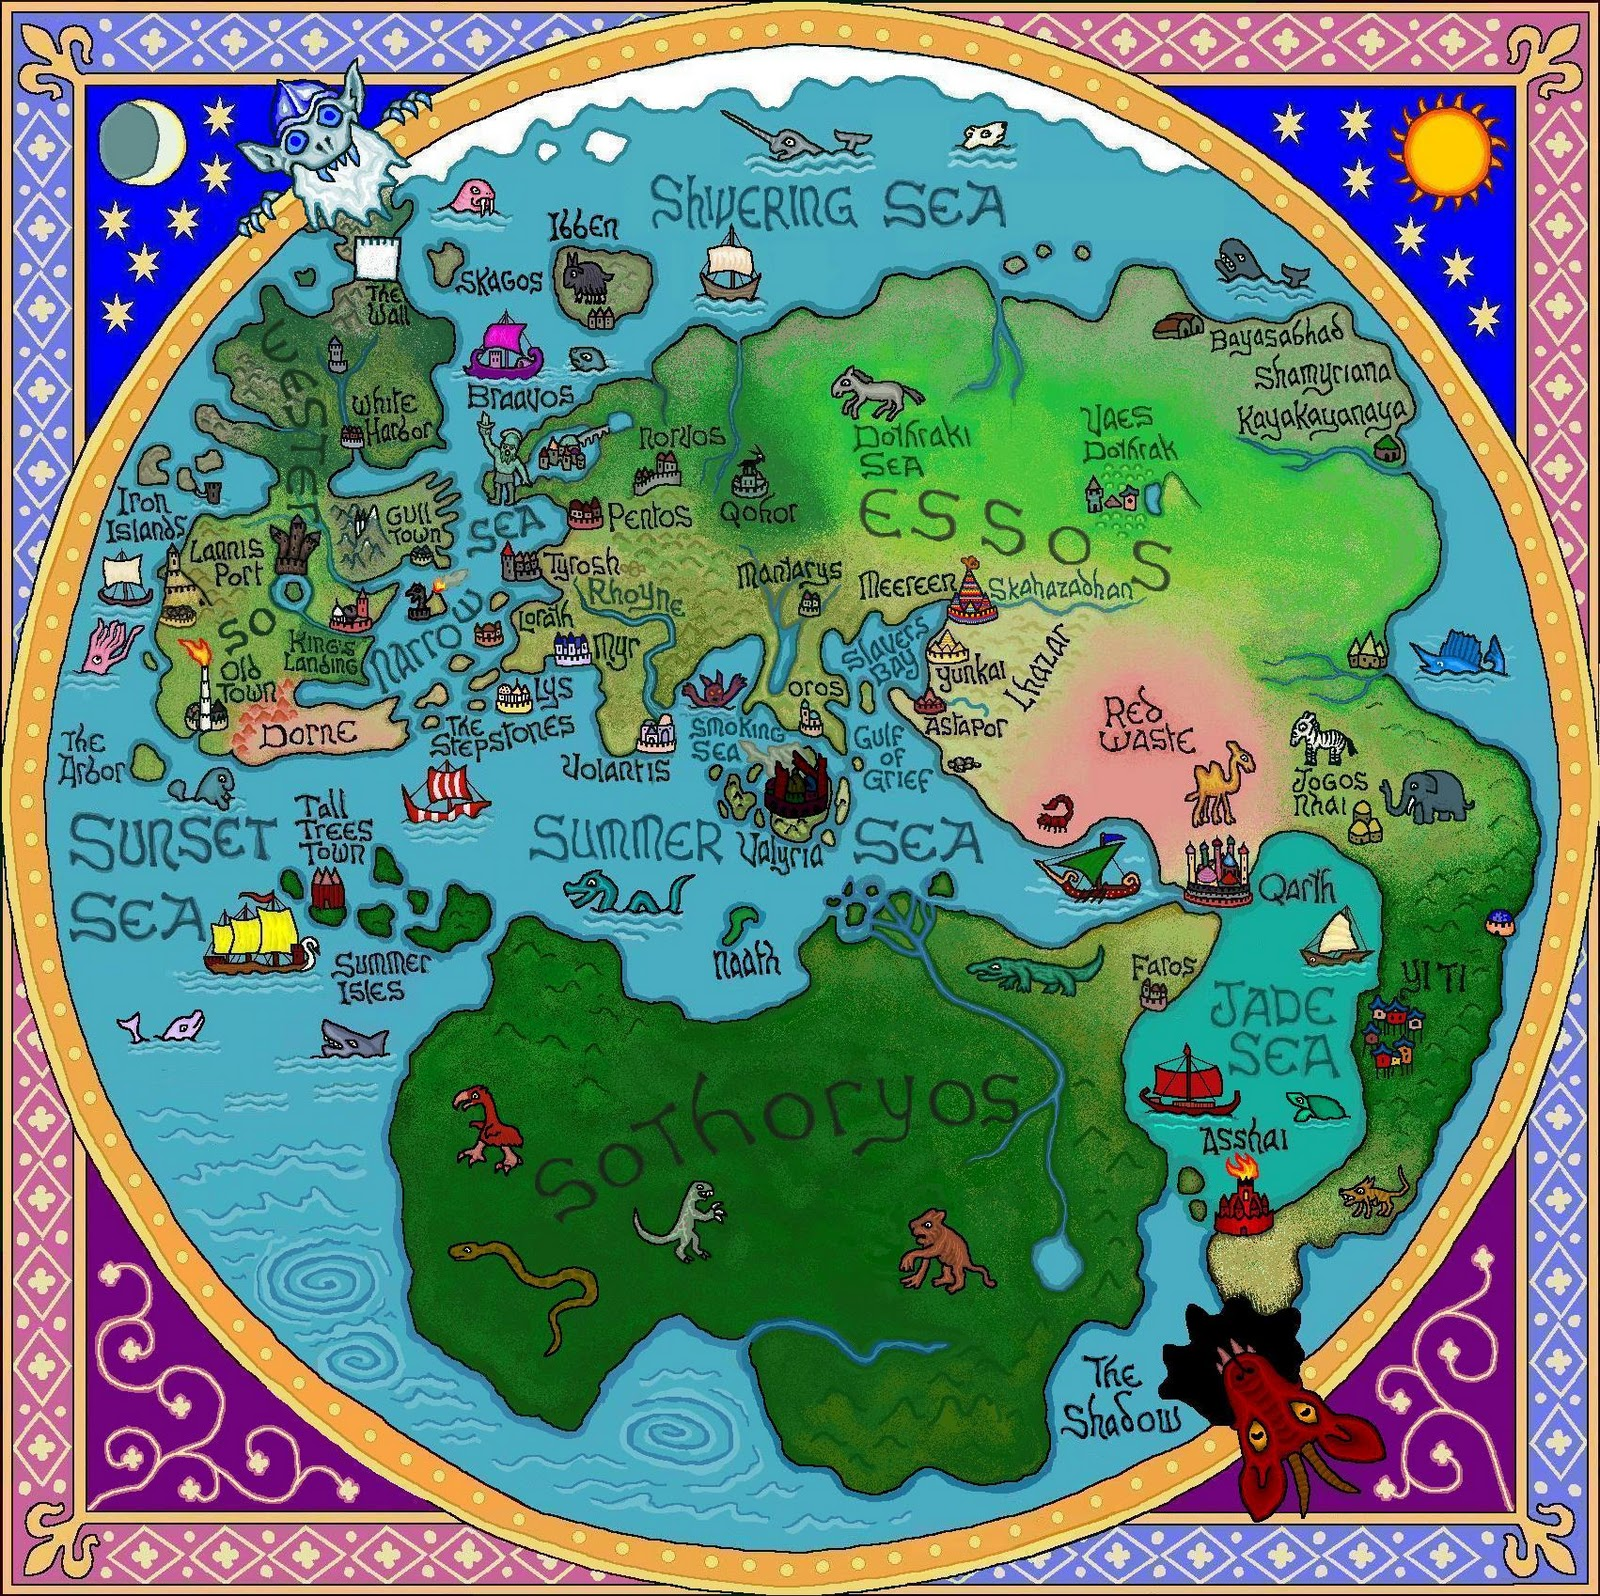 http://2.bp.blogspot.com/-spfHNq1iEu8/T6-2wXITq9I/AAAAAAAAKLM/EgQHWf7rPtI/s1600/World_Map_of_Ice_and_Fire.jpg